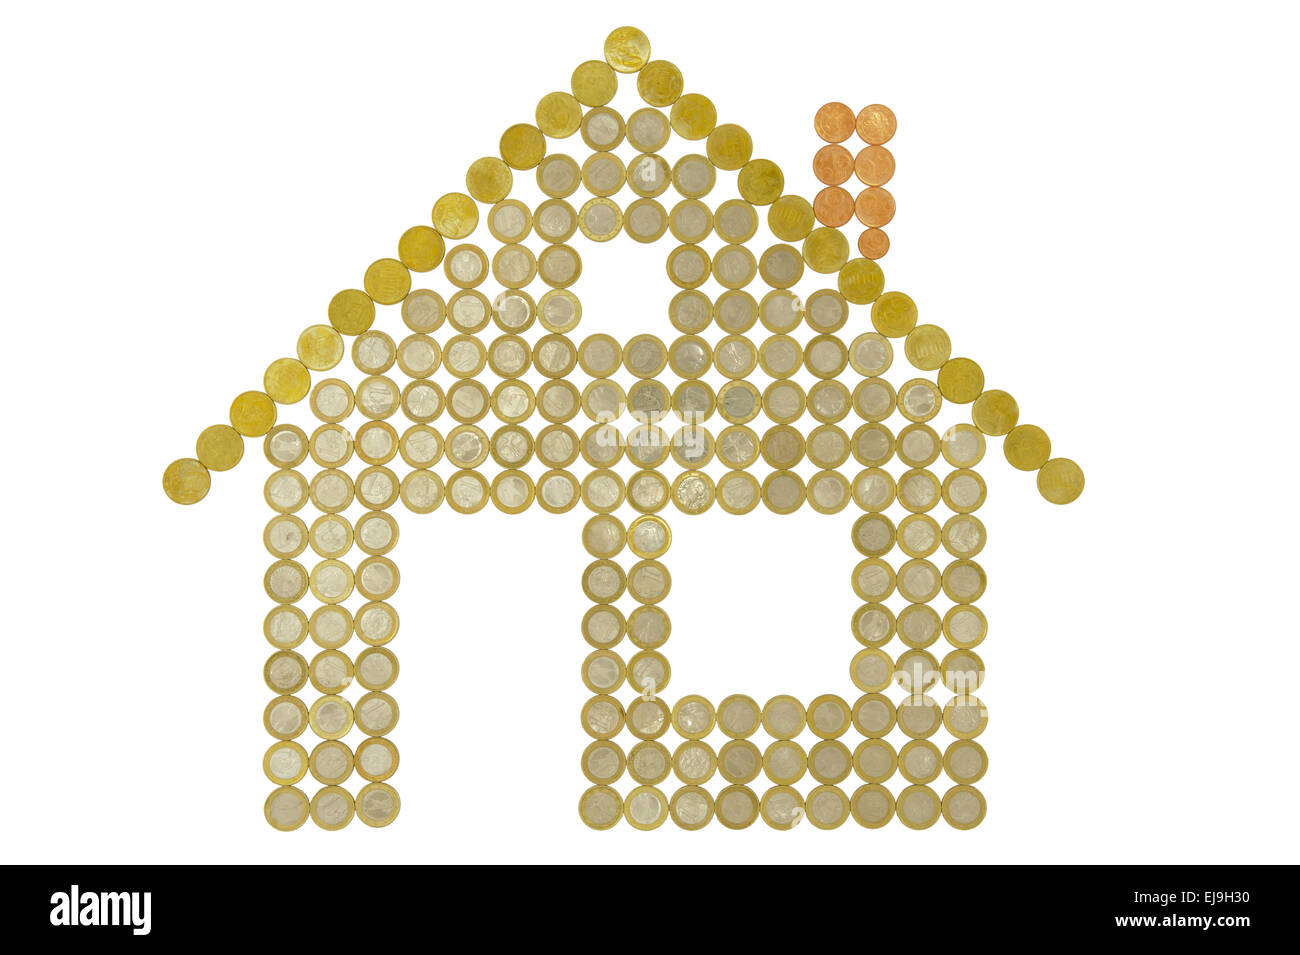 house built with Euro coins Stock Photo